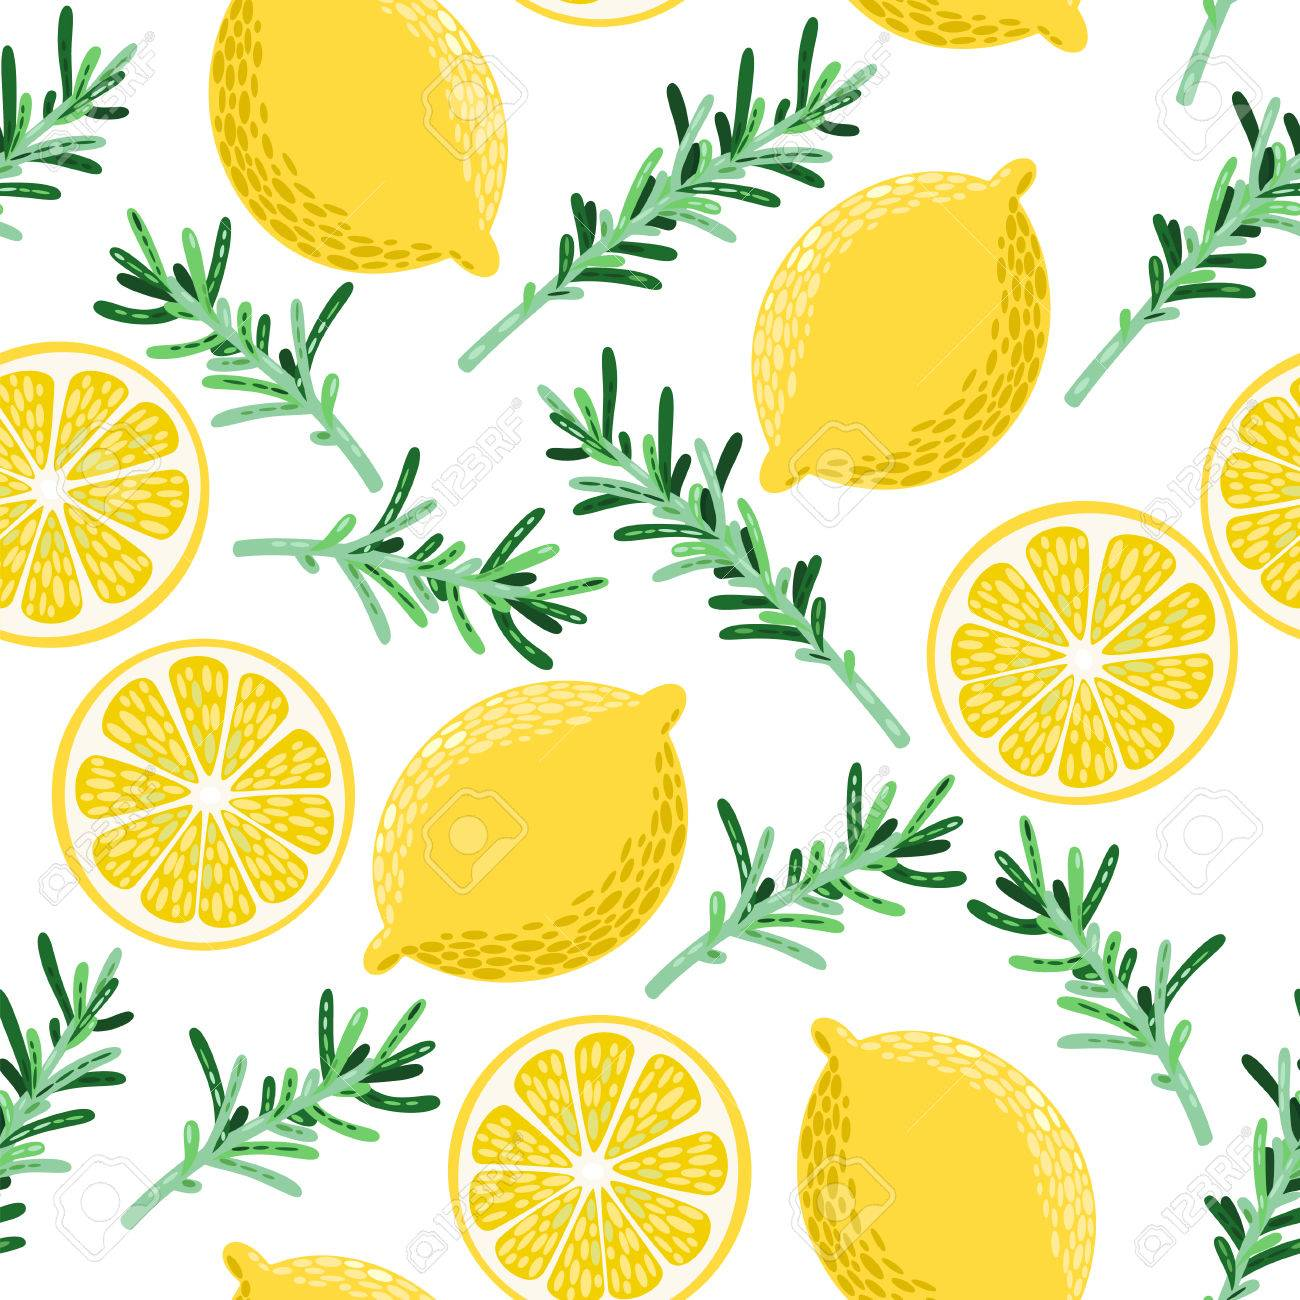 Colorful lemon and rosemary vector seamless background - 45533773